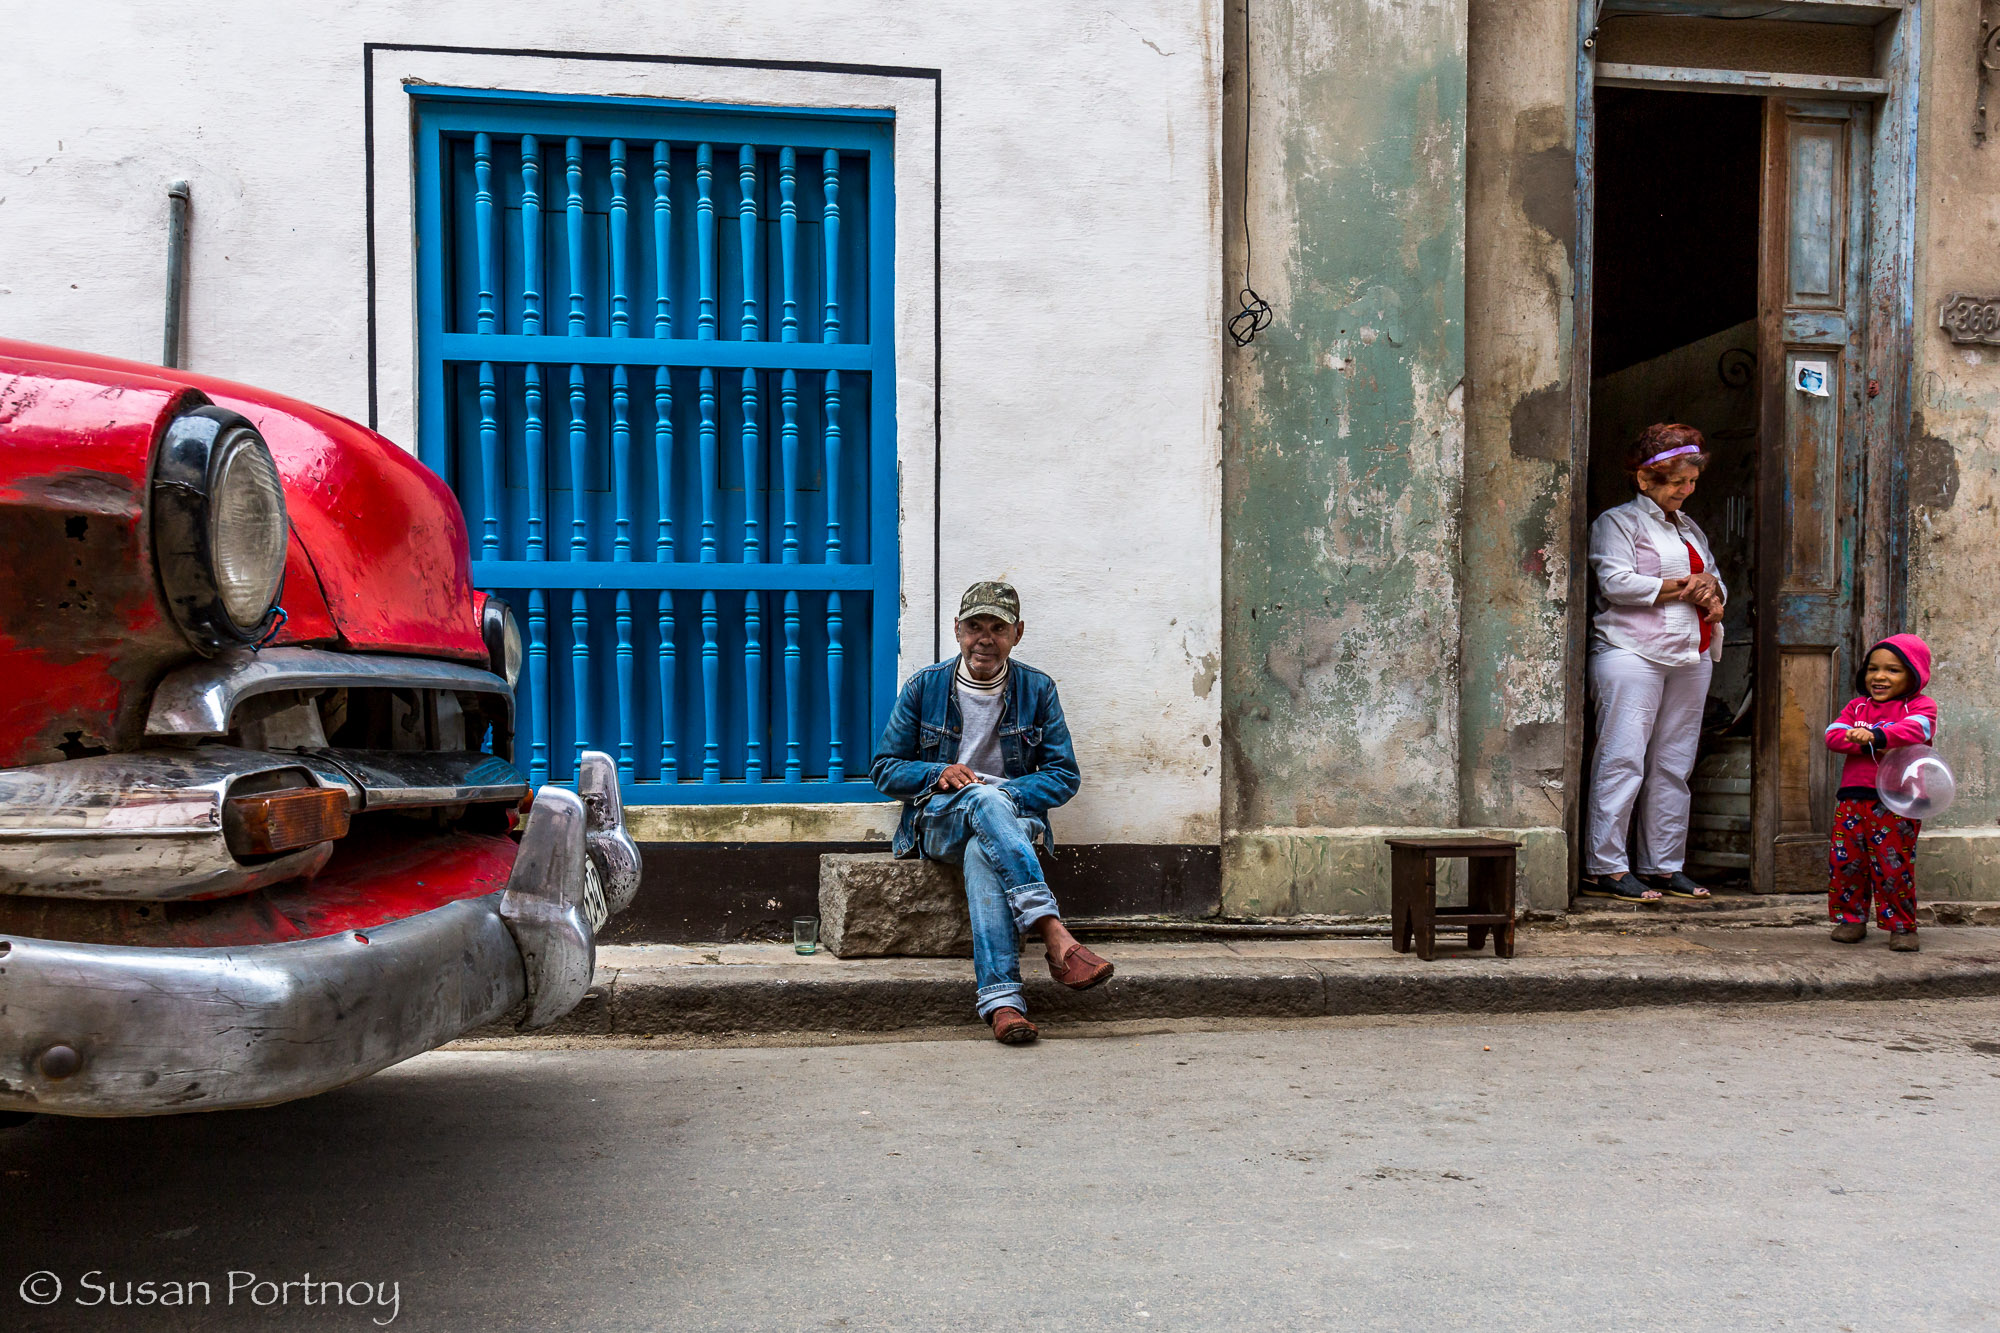 man, woman and child on a street in Havana, Cuba